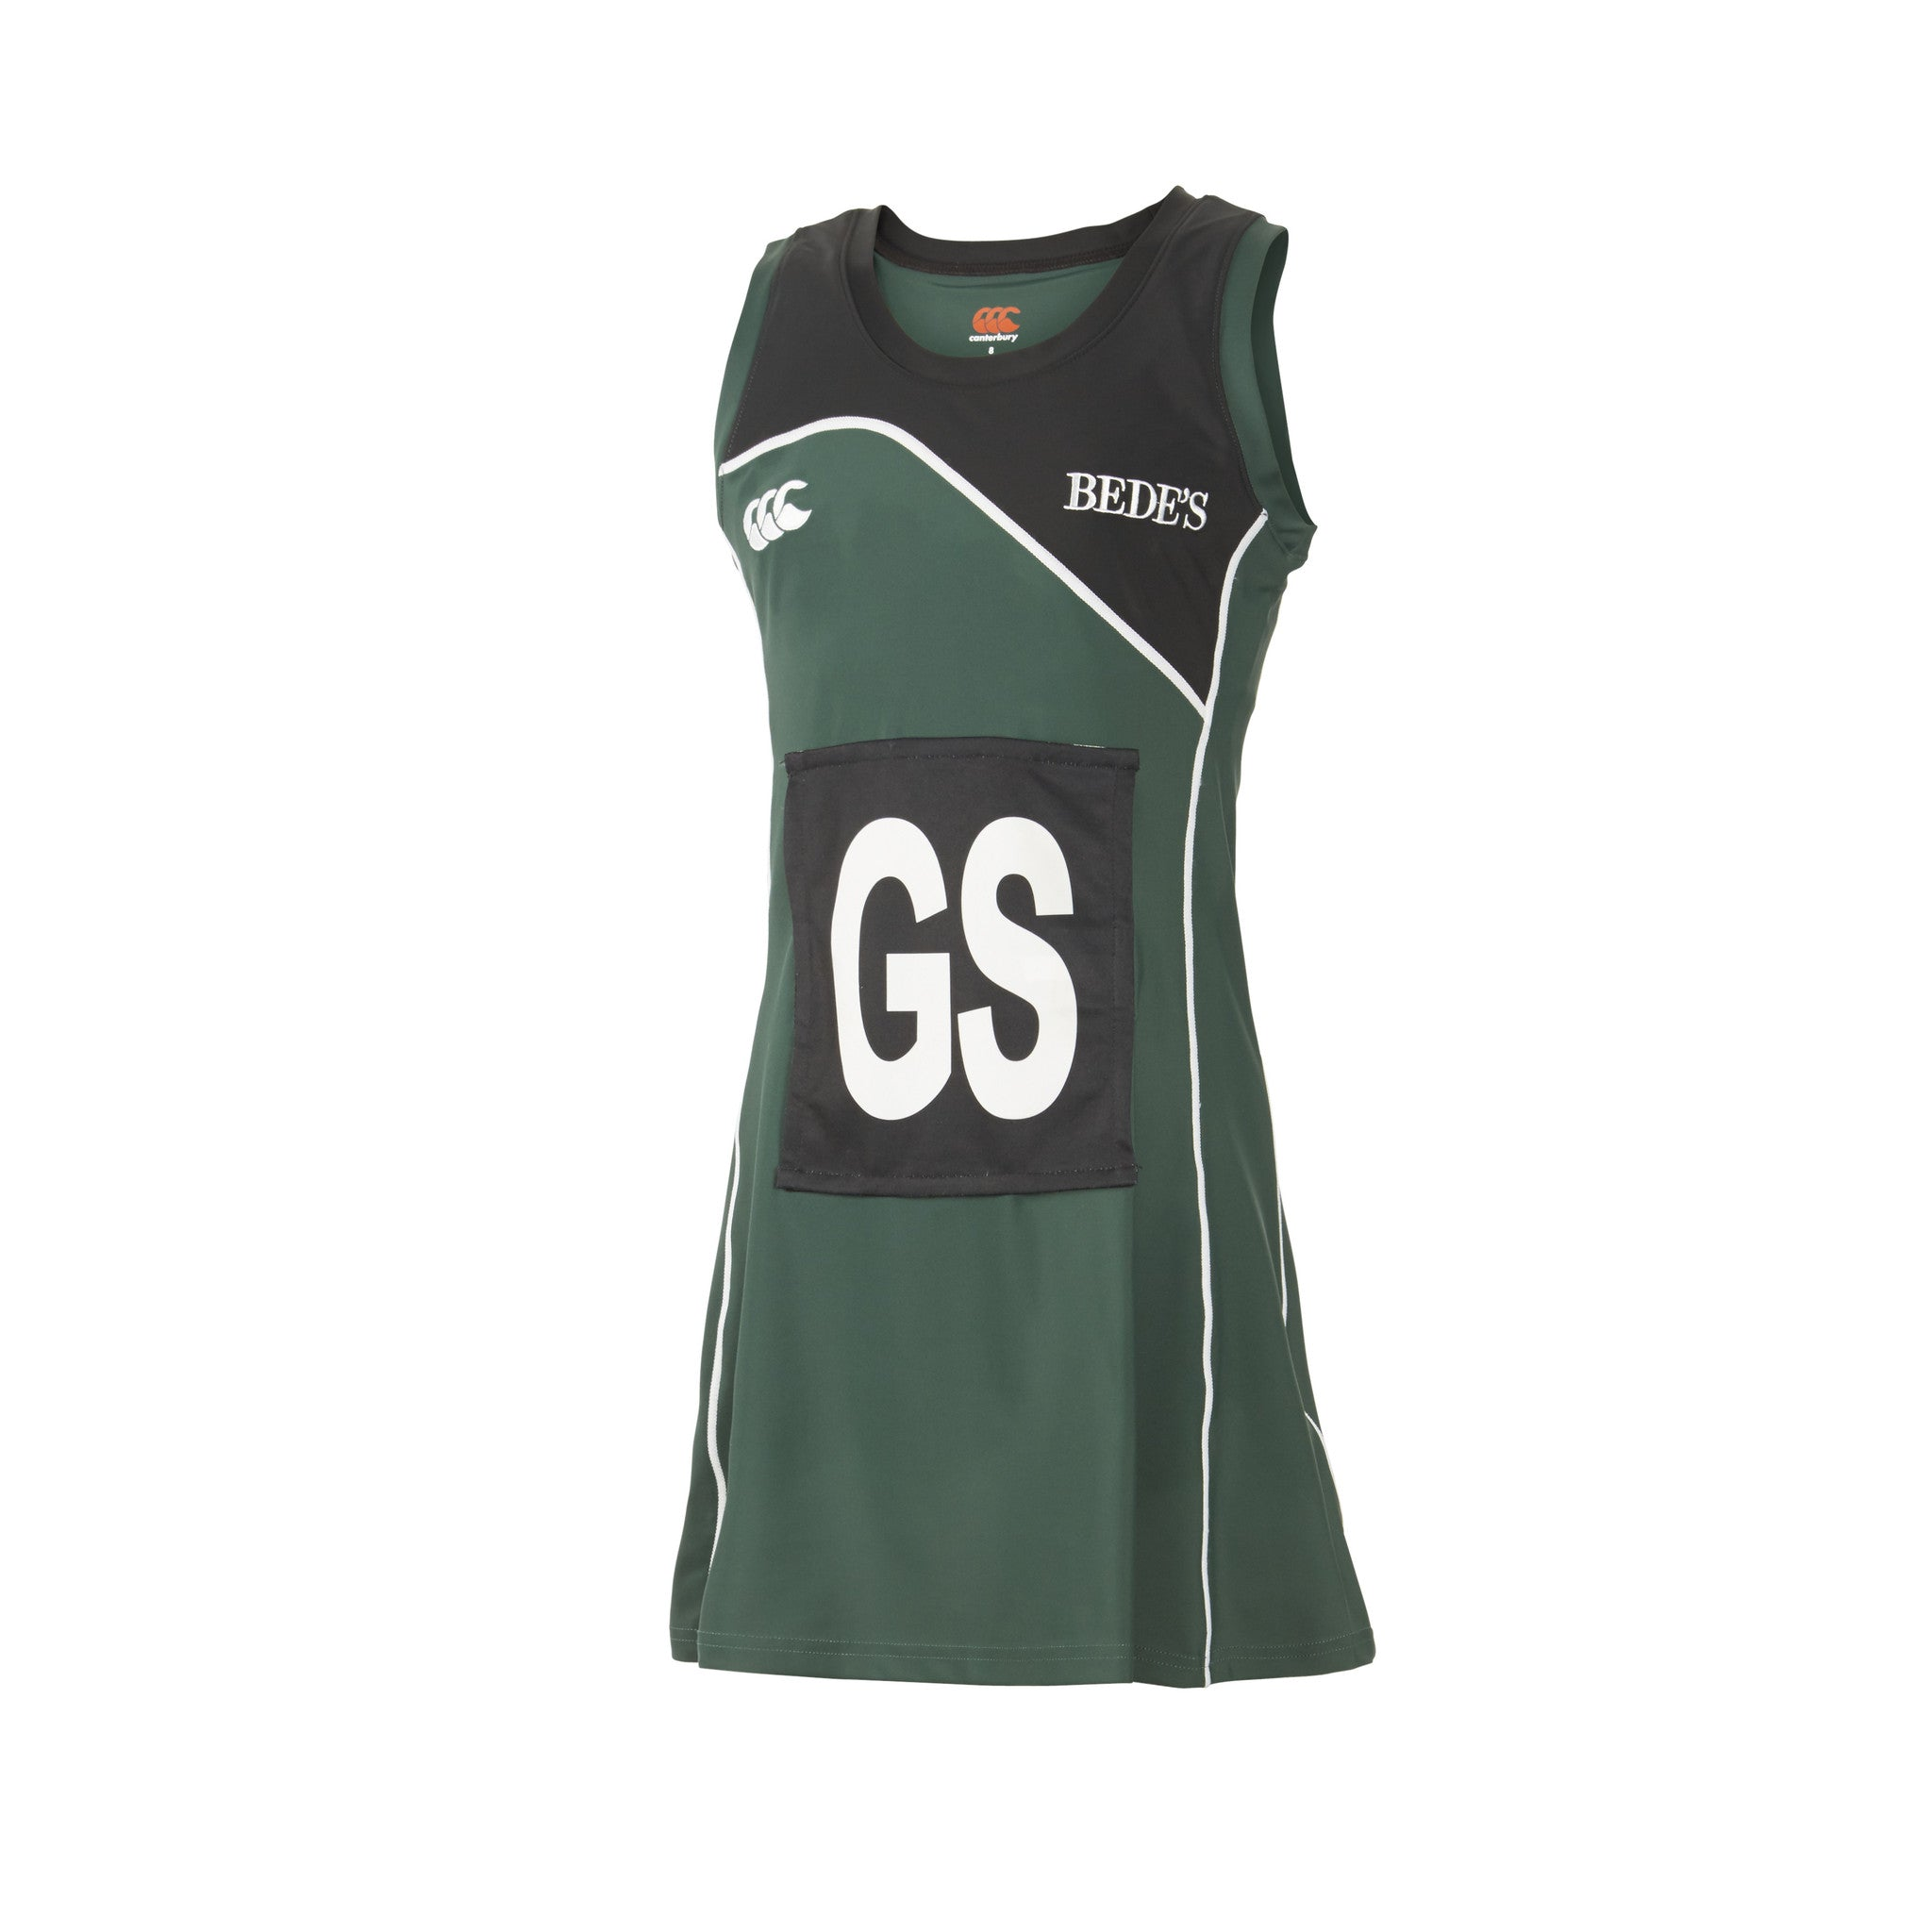 Bede's Girls' Netball Dress Senior Size